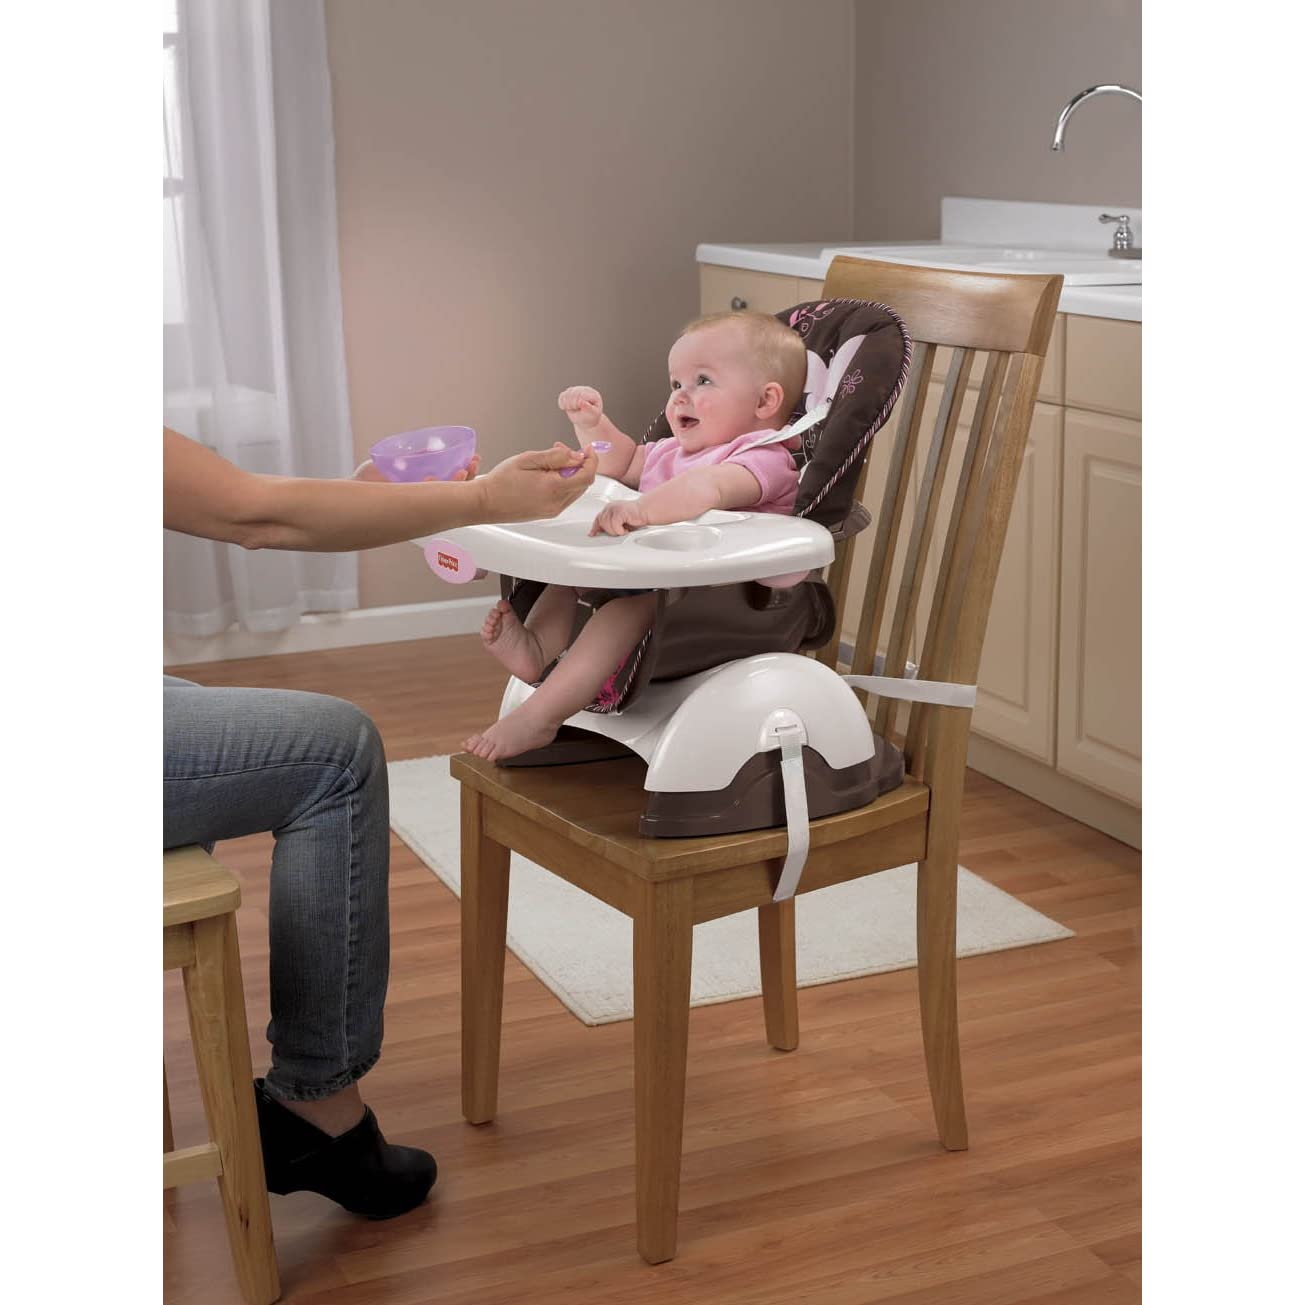 Silla de comer booster para bebe fisher price de lujo for Silla fisher price para comer